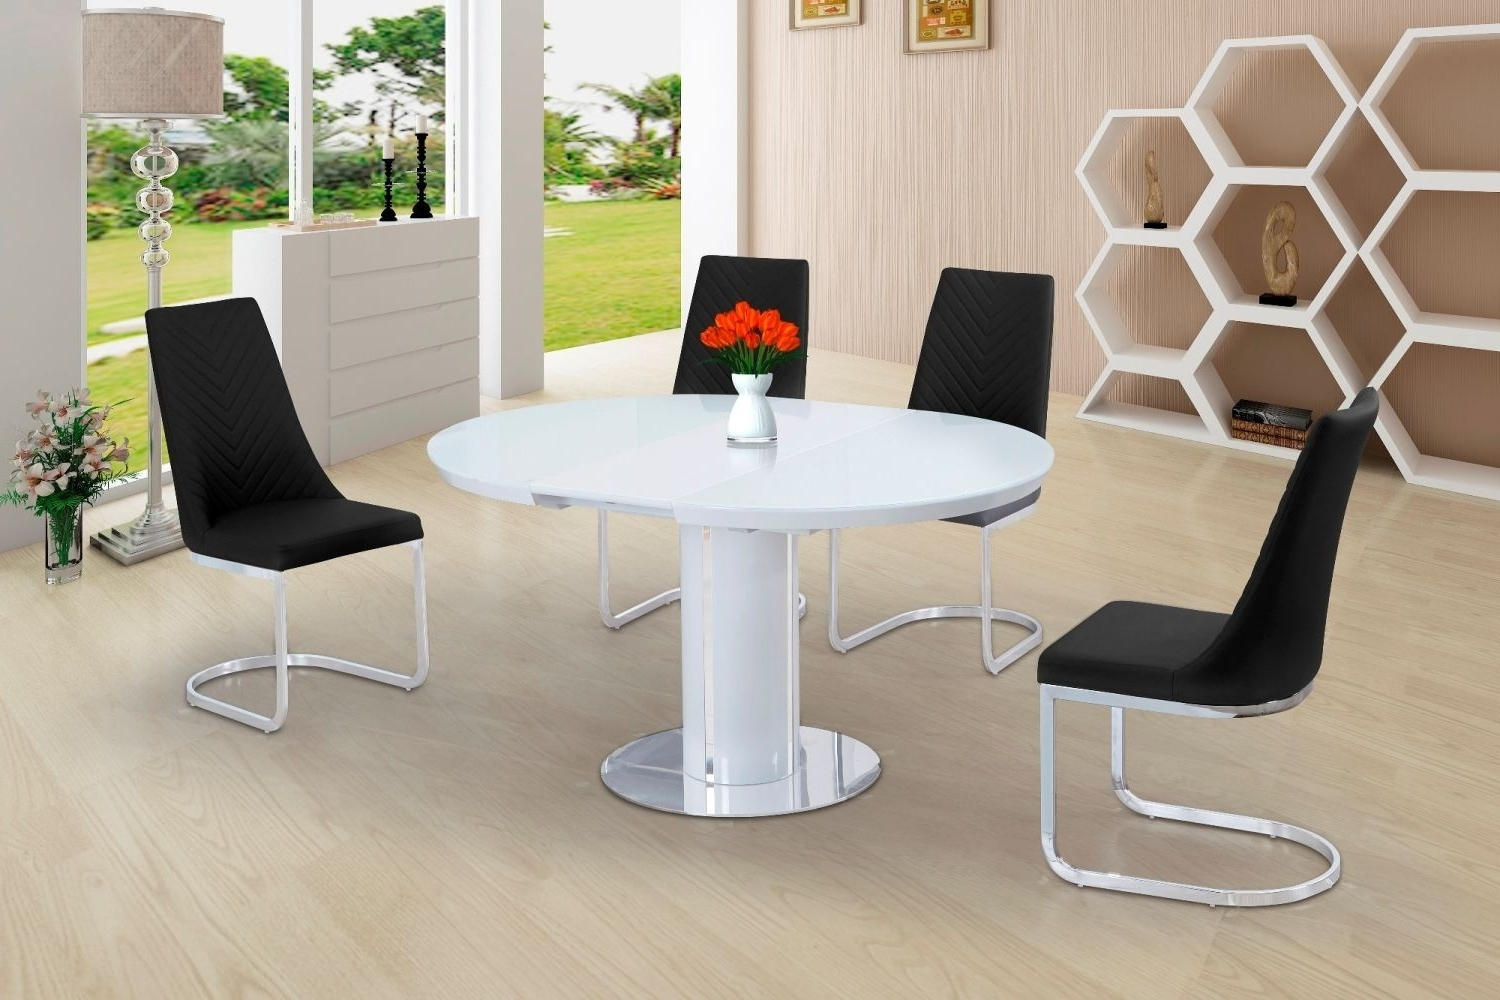 Buy Space Saving White Gloss Extending Round Dining Table Throughout Well Liked White Round Extending Dining Tables (Gallery 7 of 25)